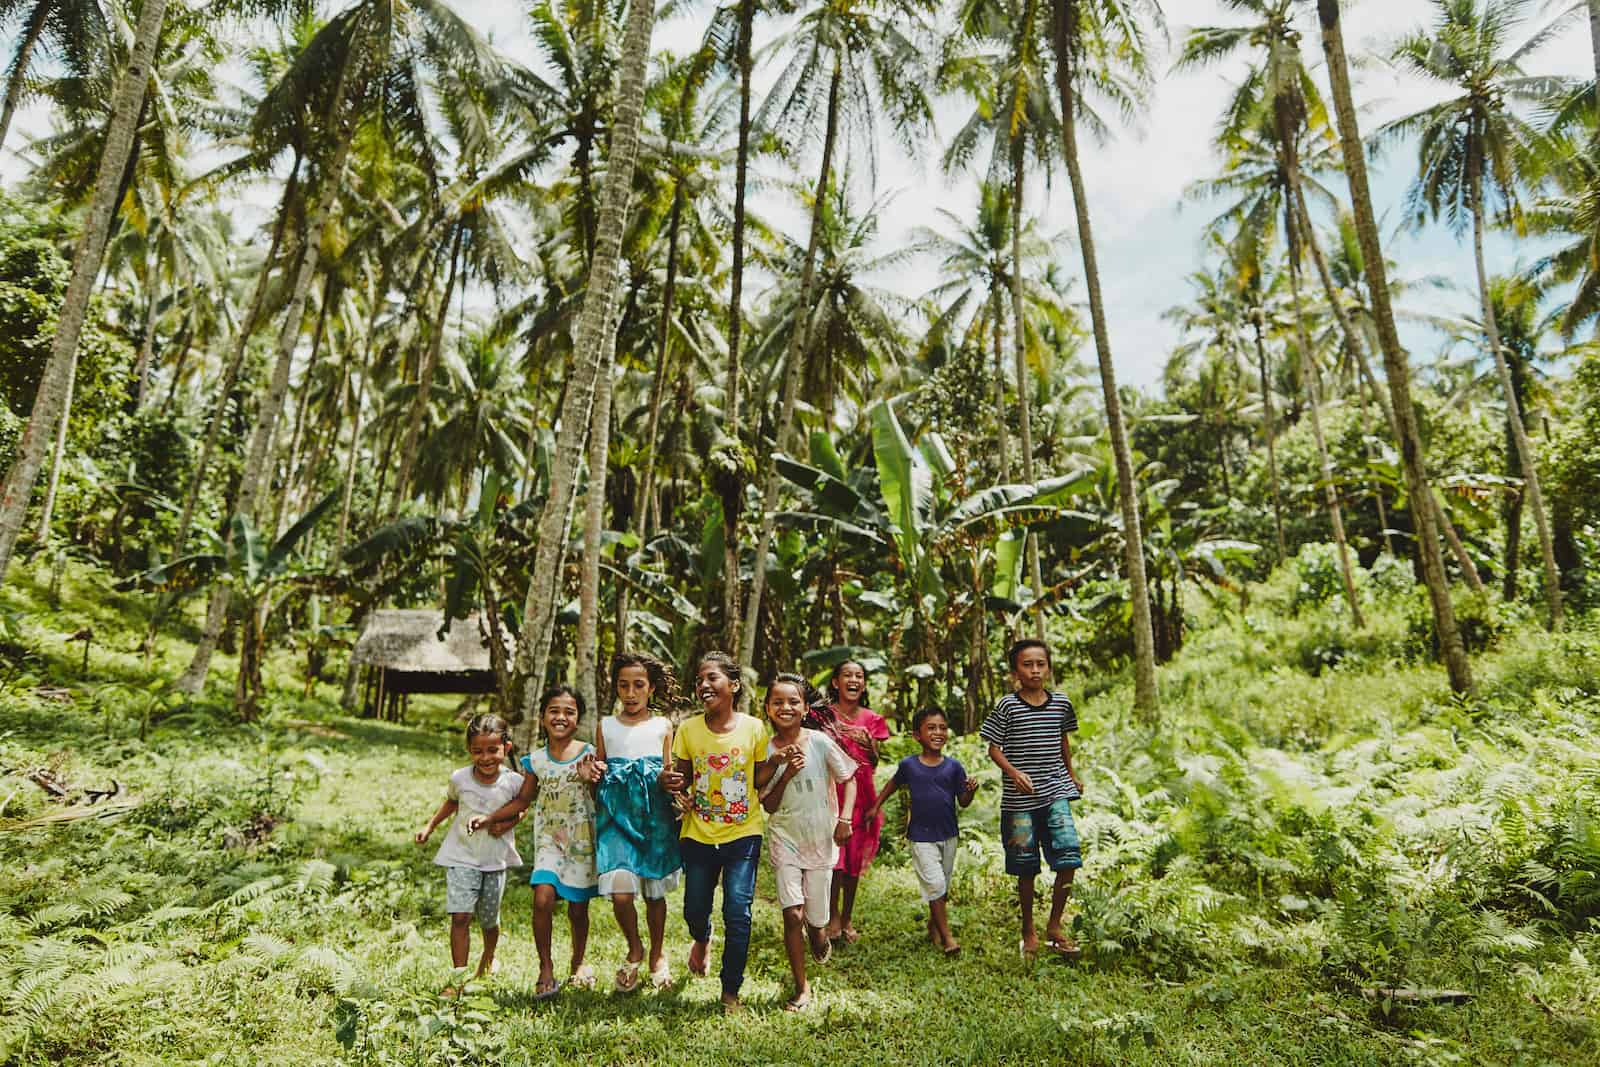 A group of children run through green grass in a forest of palm trees in Indonesia.